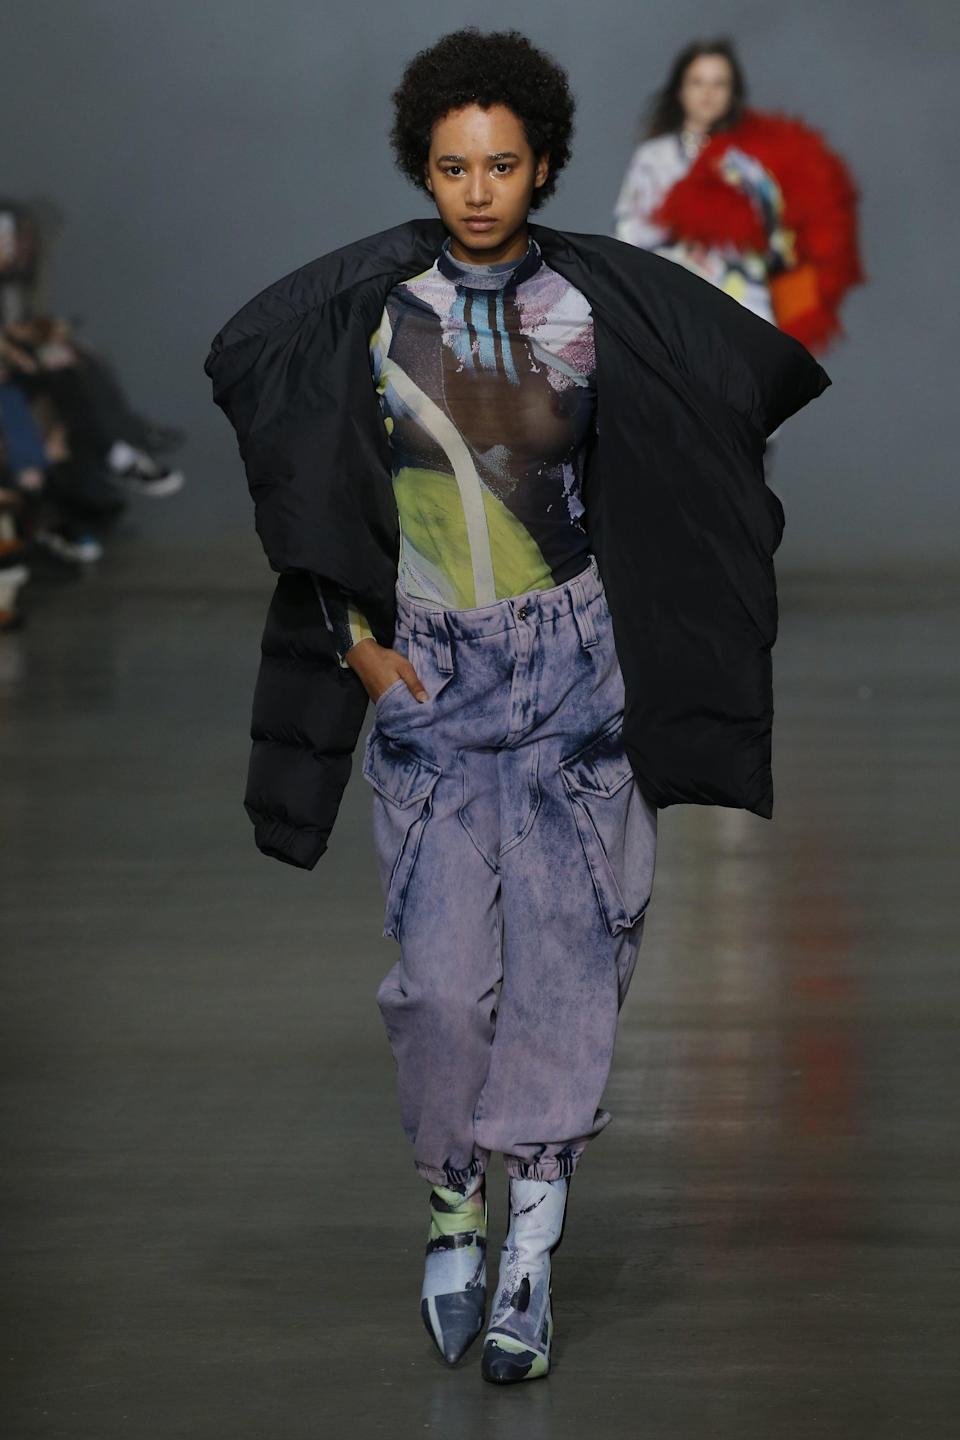 <p>Founded in 2011, Marques'Almeida is one of the younger brands demonstrating what very well may be the future of luxury. A cross between high fashion and streetwear, denim is juxtaposed with delicate fabrics such as silk. To get front row-ready, try a pair of colored acid wash jeans (yep, they're back) and a printed top (literally anything goes here).</p>